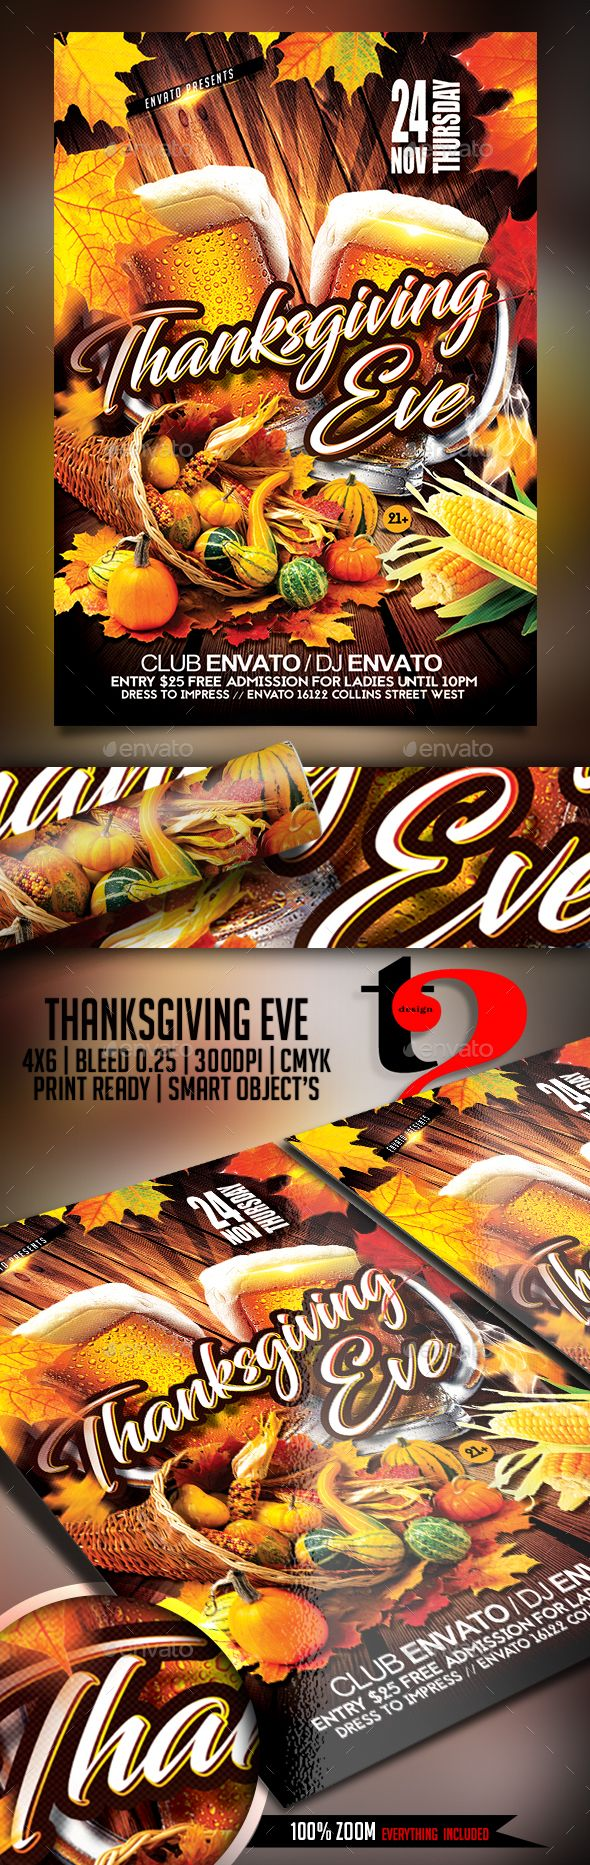 Thanksgiving Eve Flyer Thanksgiving eve, Christmas flyer